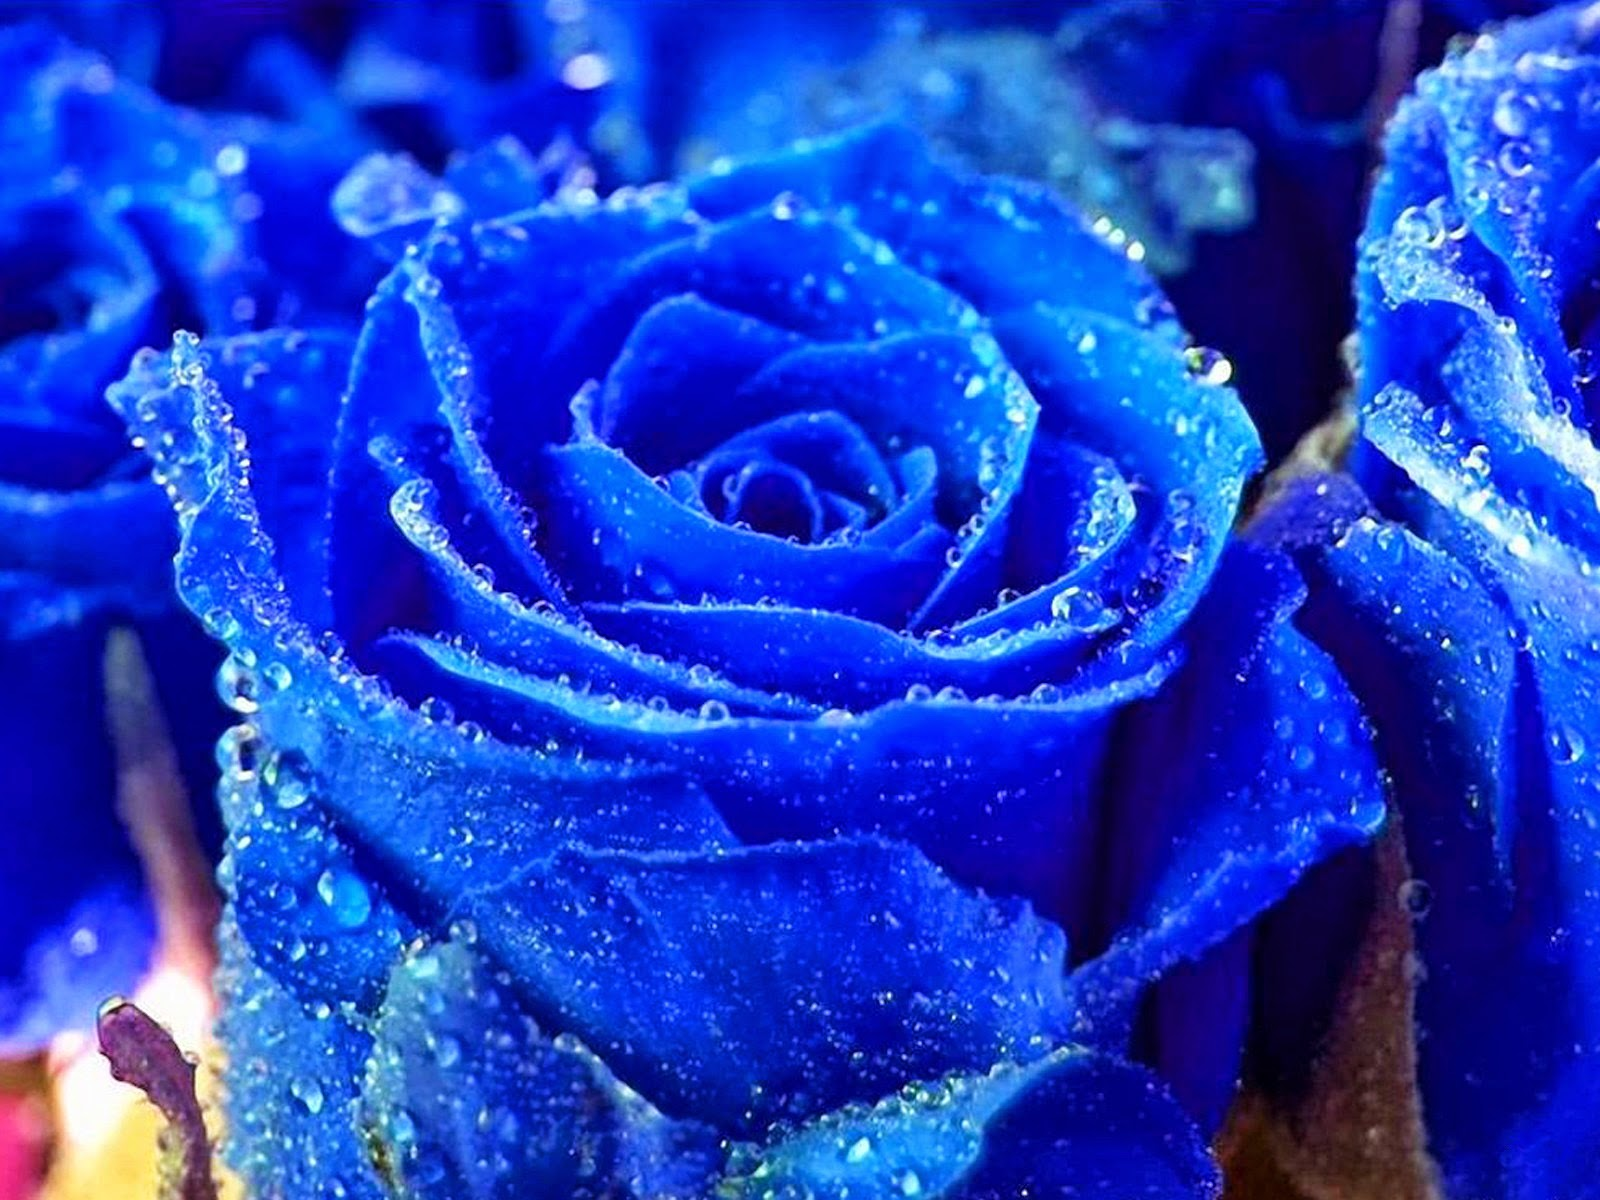 Wallpaper quotes roses wallpapers beautiful blue rose wallpaper allneed roses wallpapers beautiful blue rose wallpaper allneed izmirmasajfo